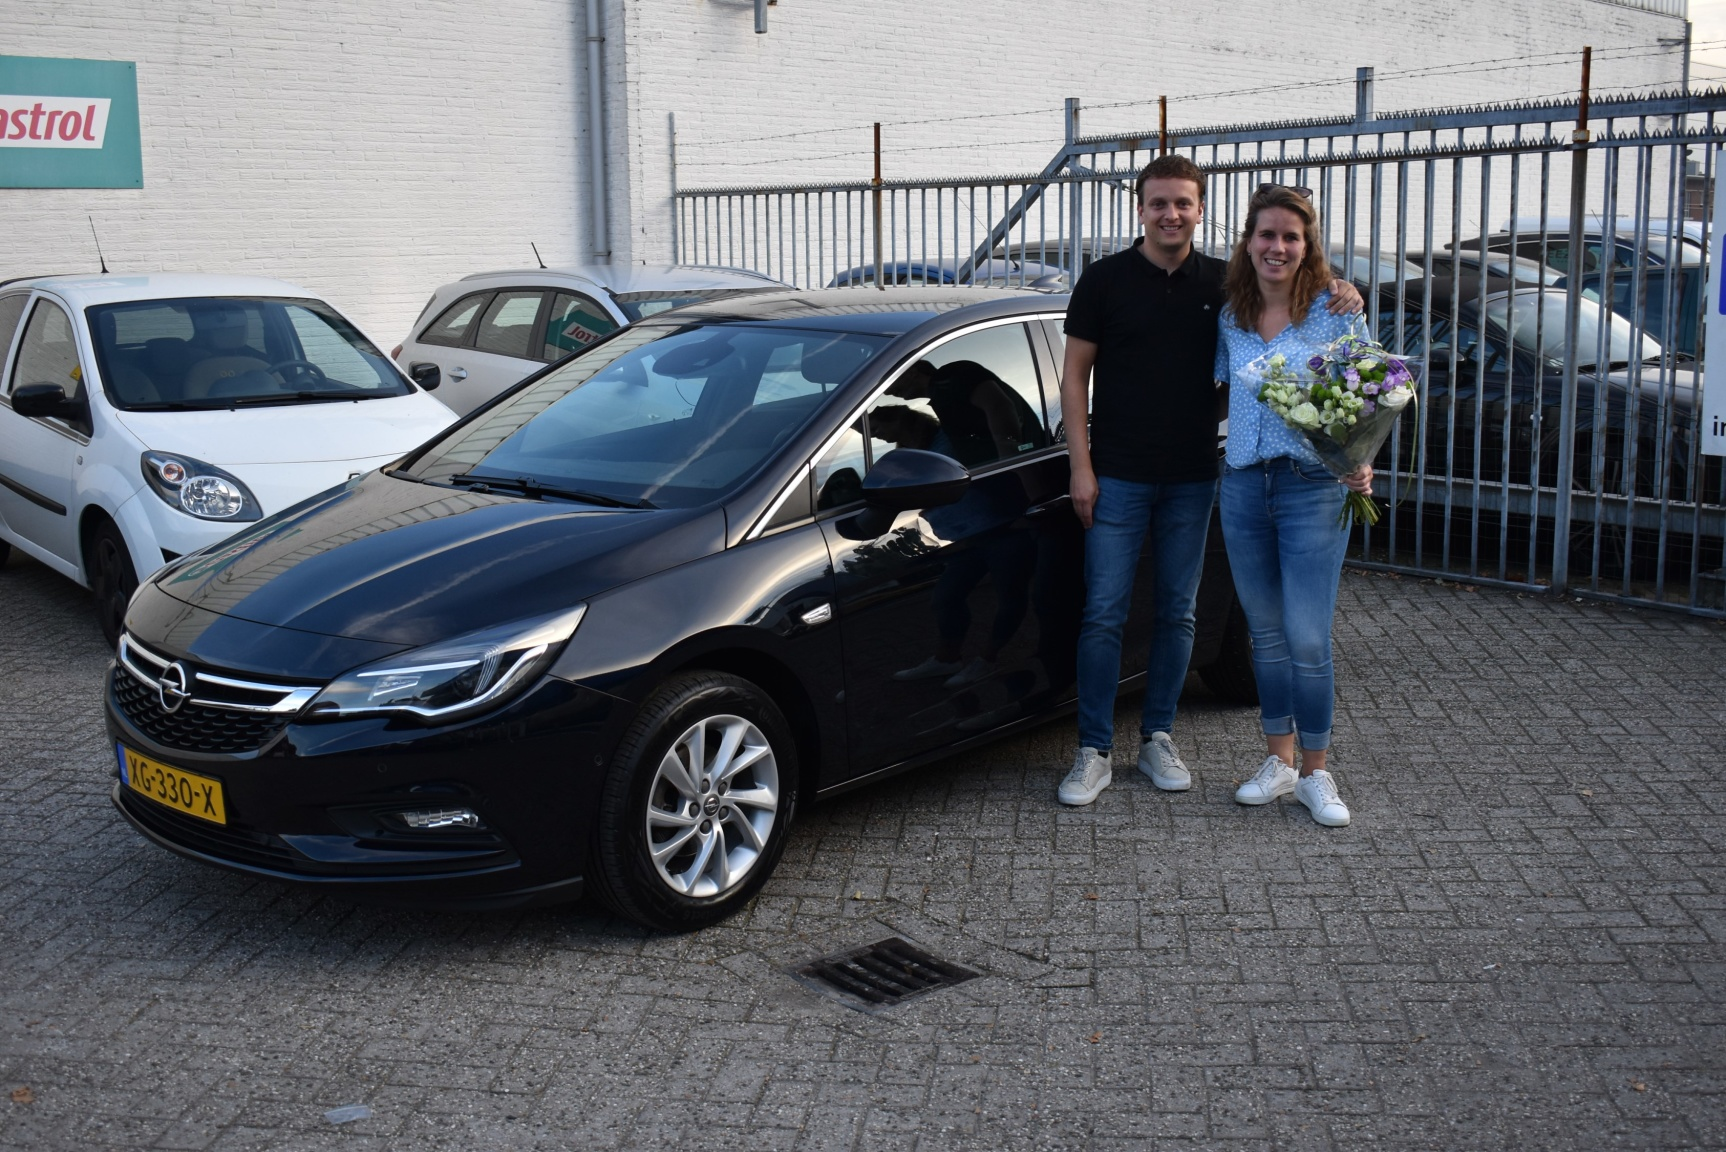 Aflevering Opel Astra automaat-2021-09-13 11:17:48